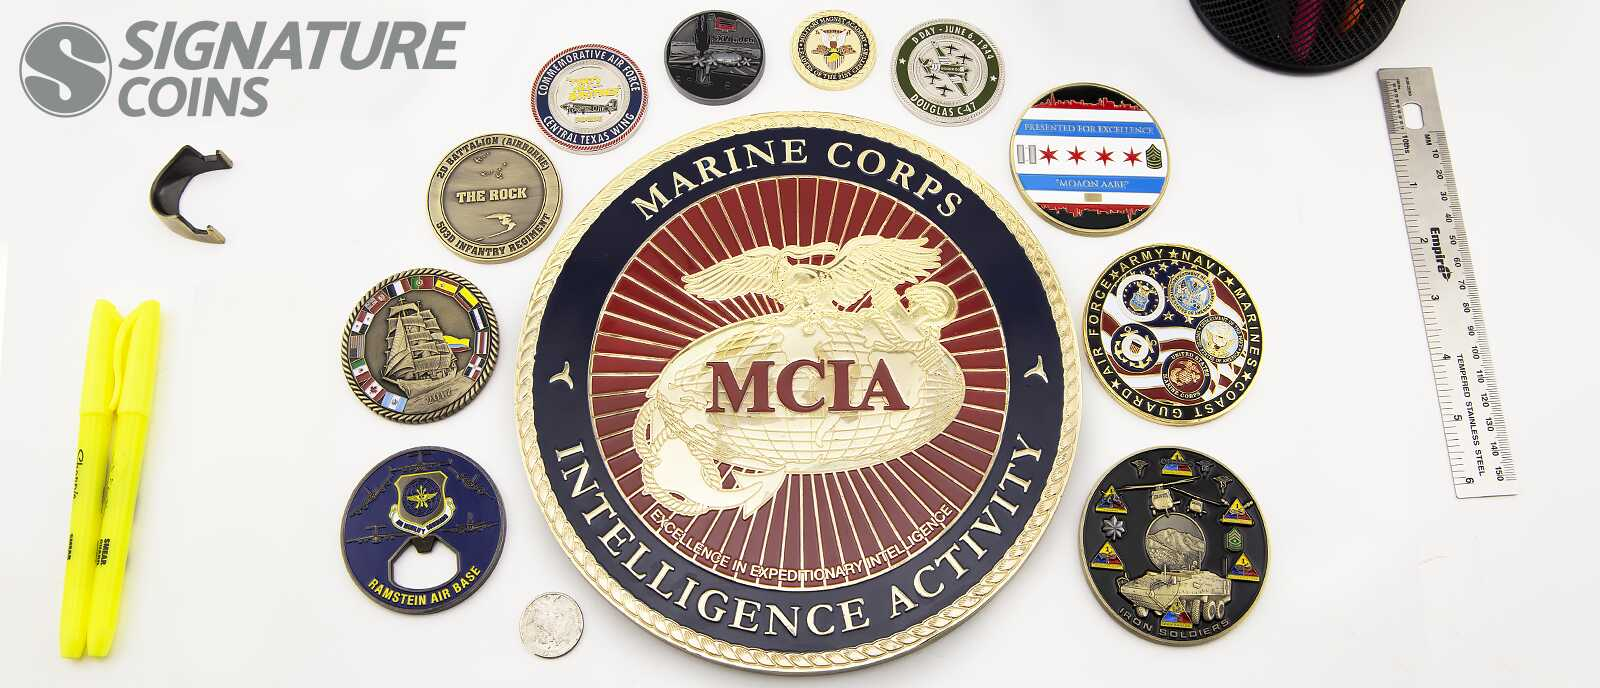 SignatureCoins-OversizedCoins-Military Challenge Coins 4